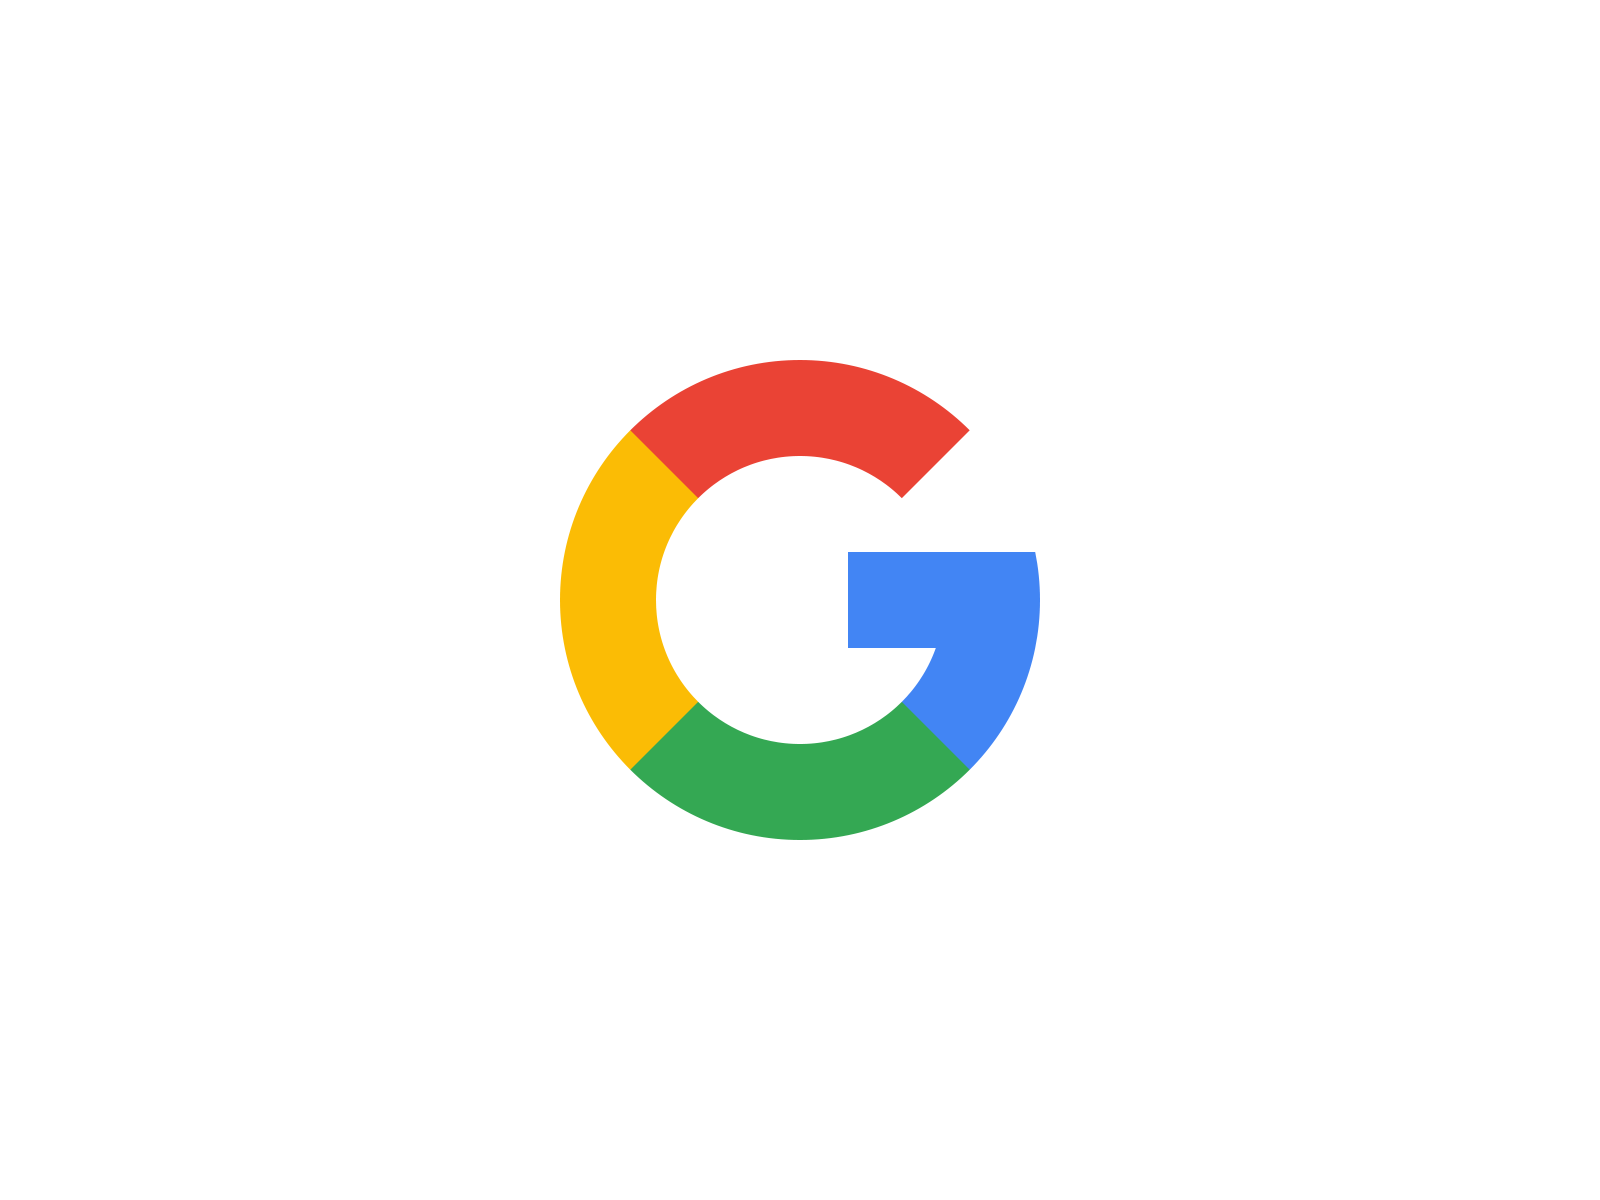 Revised google logo - Google Logo PNG